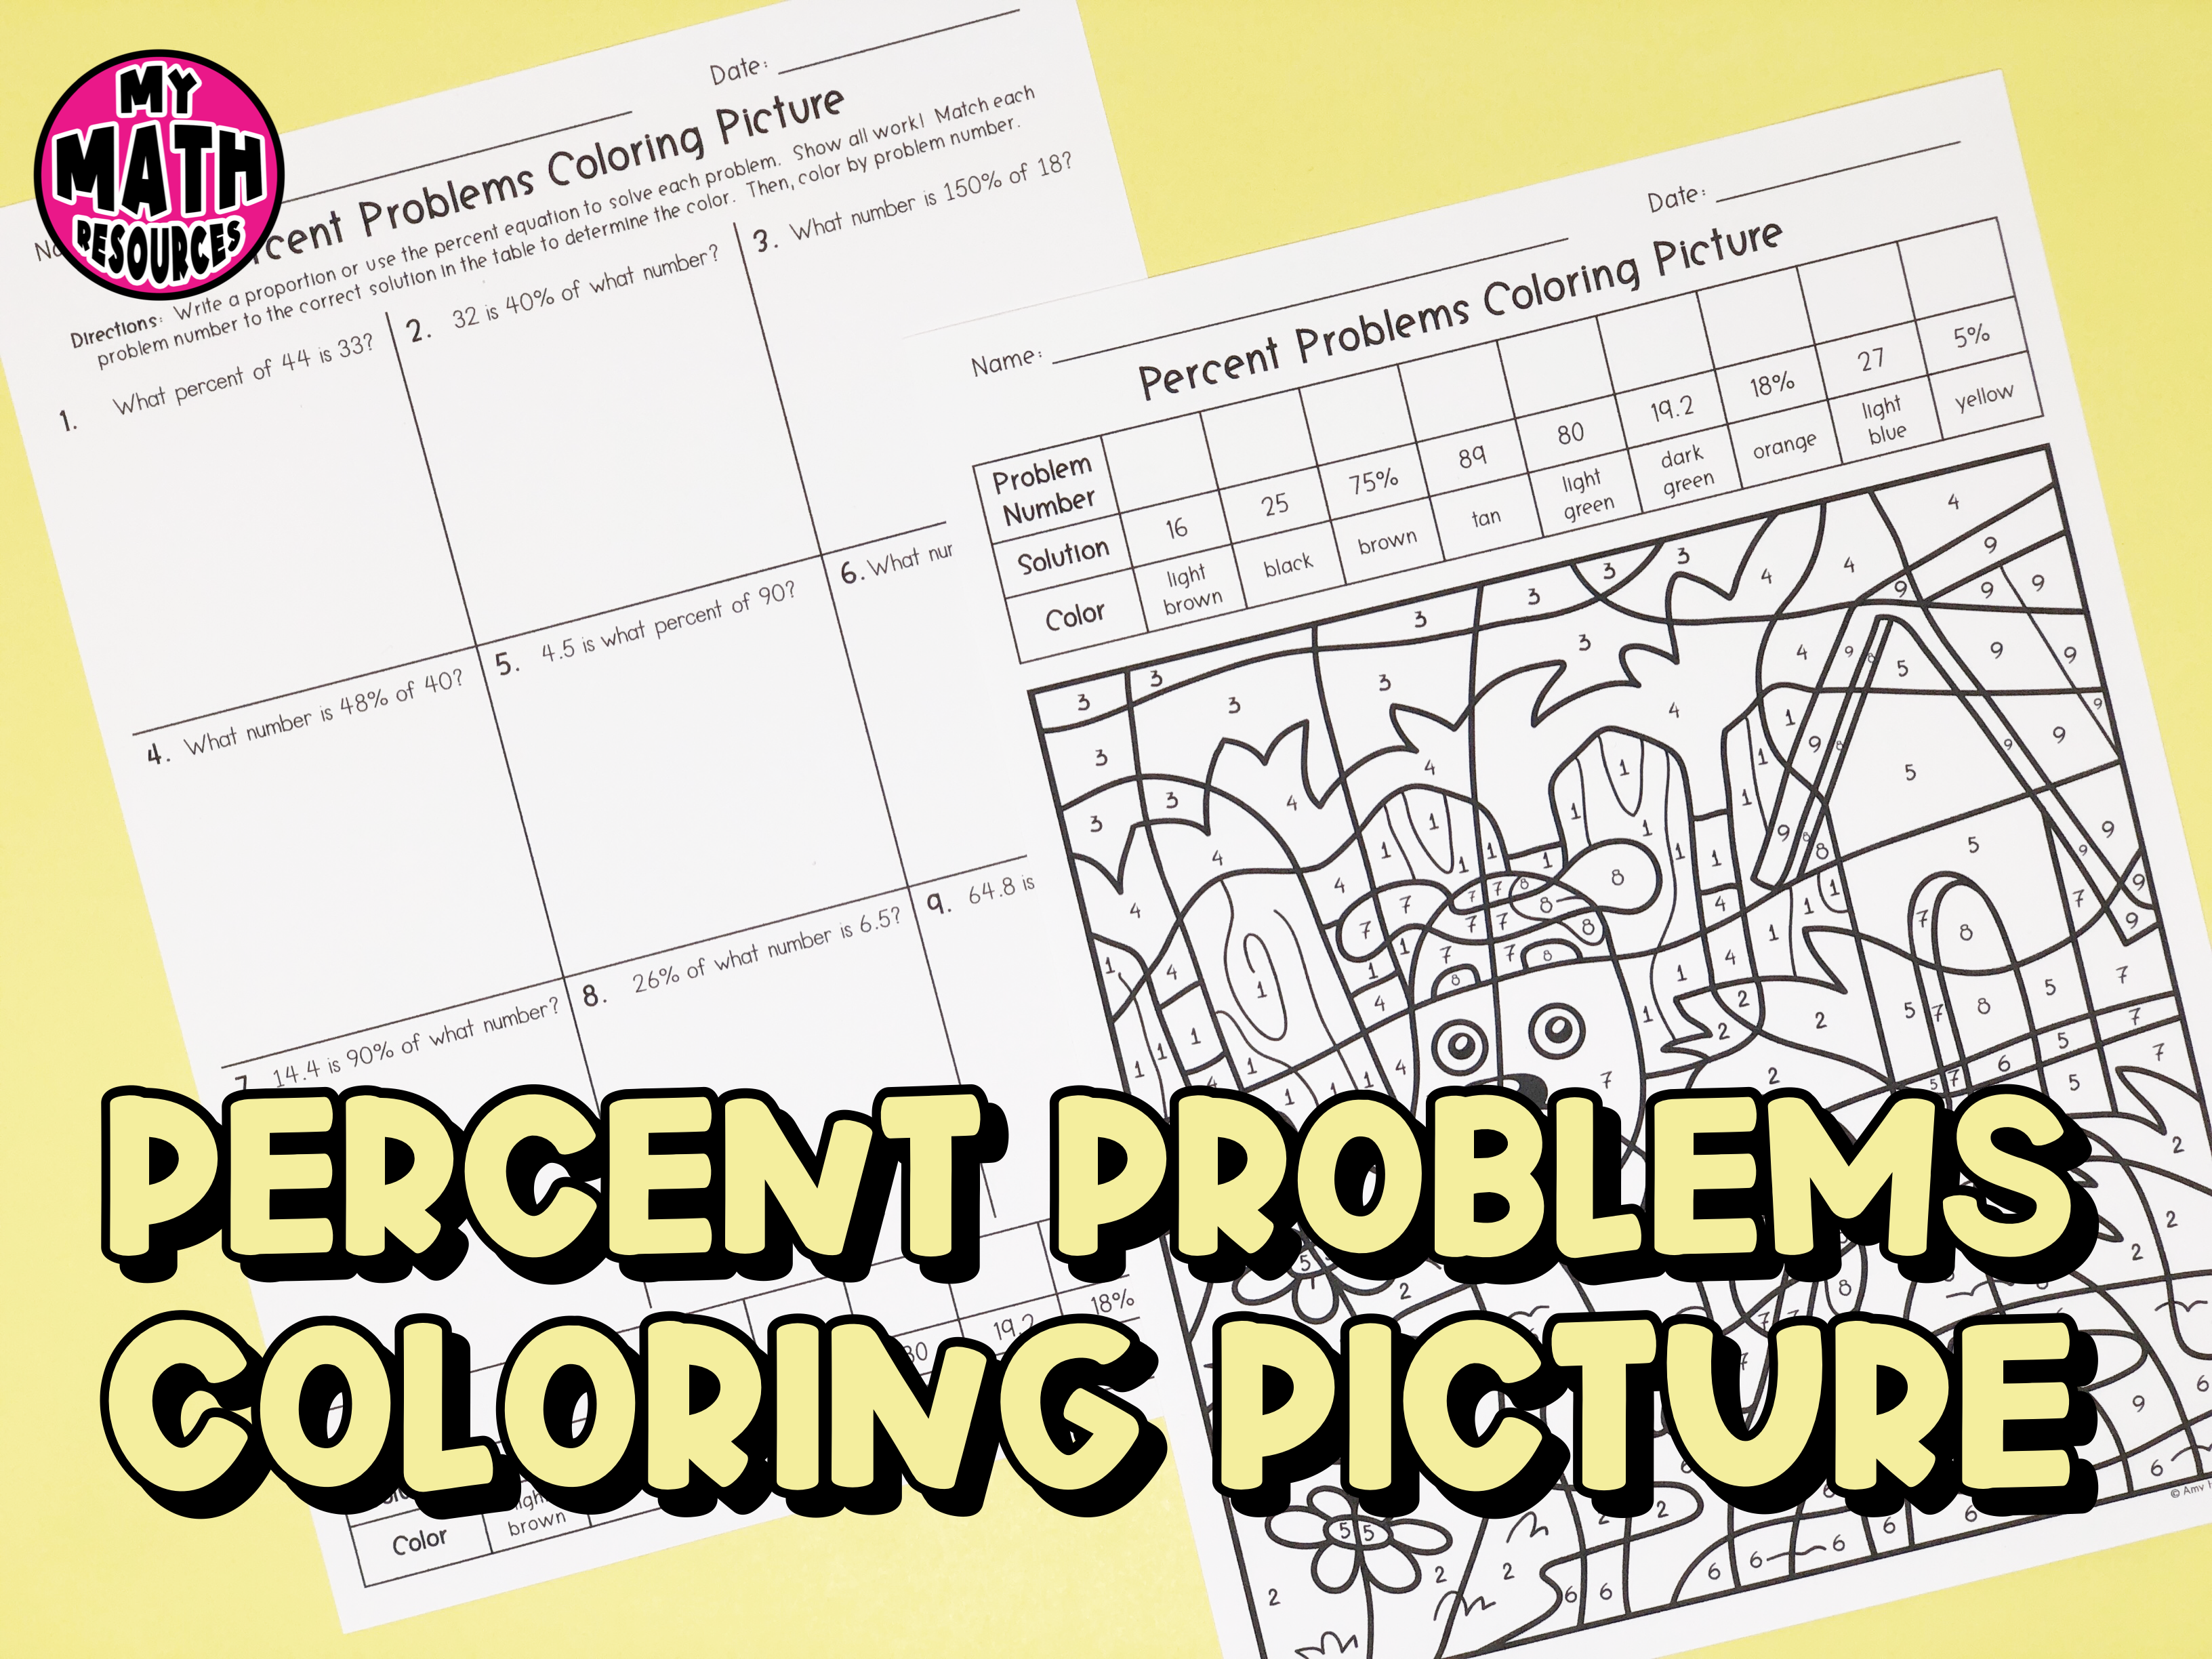 hight resolution of My Math Resources - Percent Problems Coloring Picture Worksheet   Math